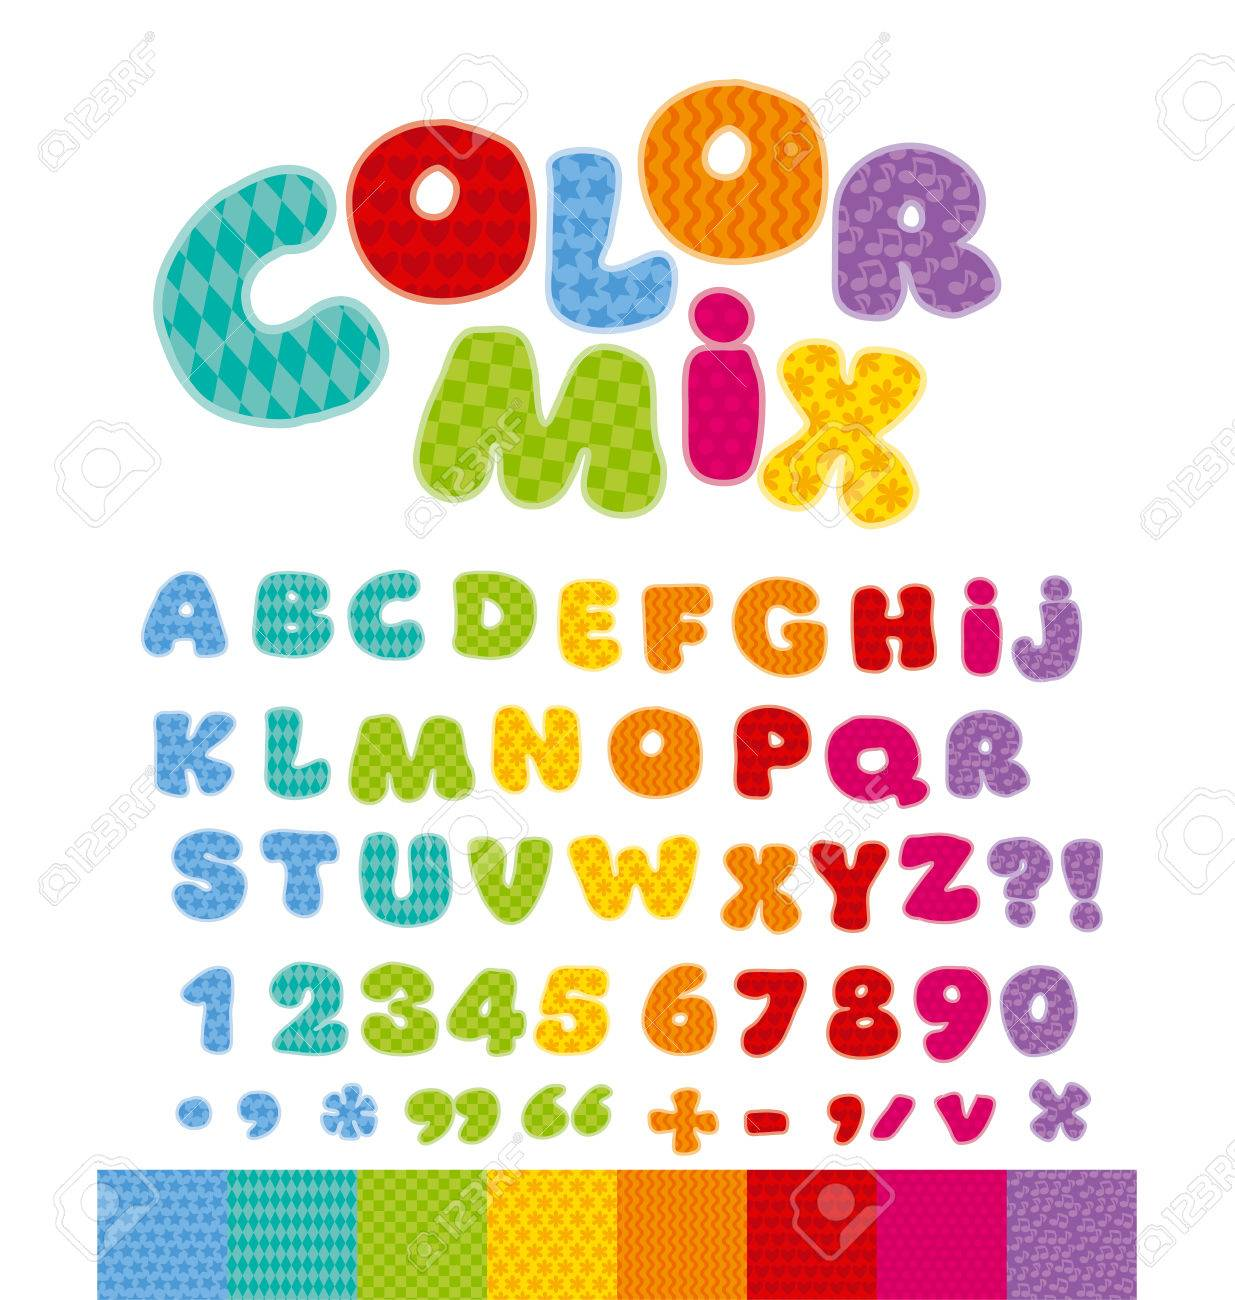 Funny Alphabet For Children With Patchwork Patterns Cute Cartoon Alphabetic Letters In Rainbow Colors